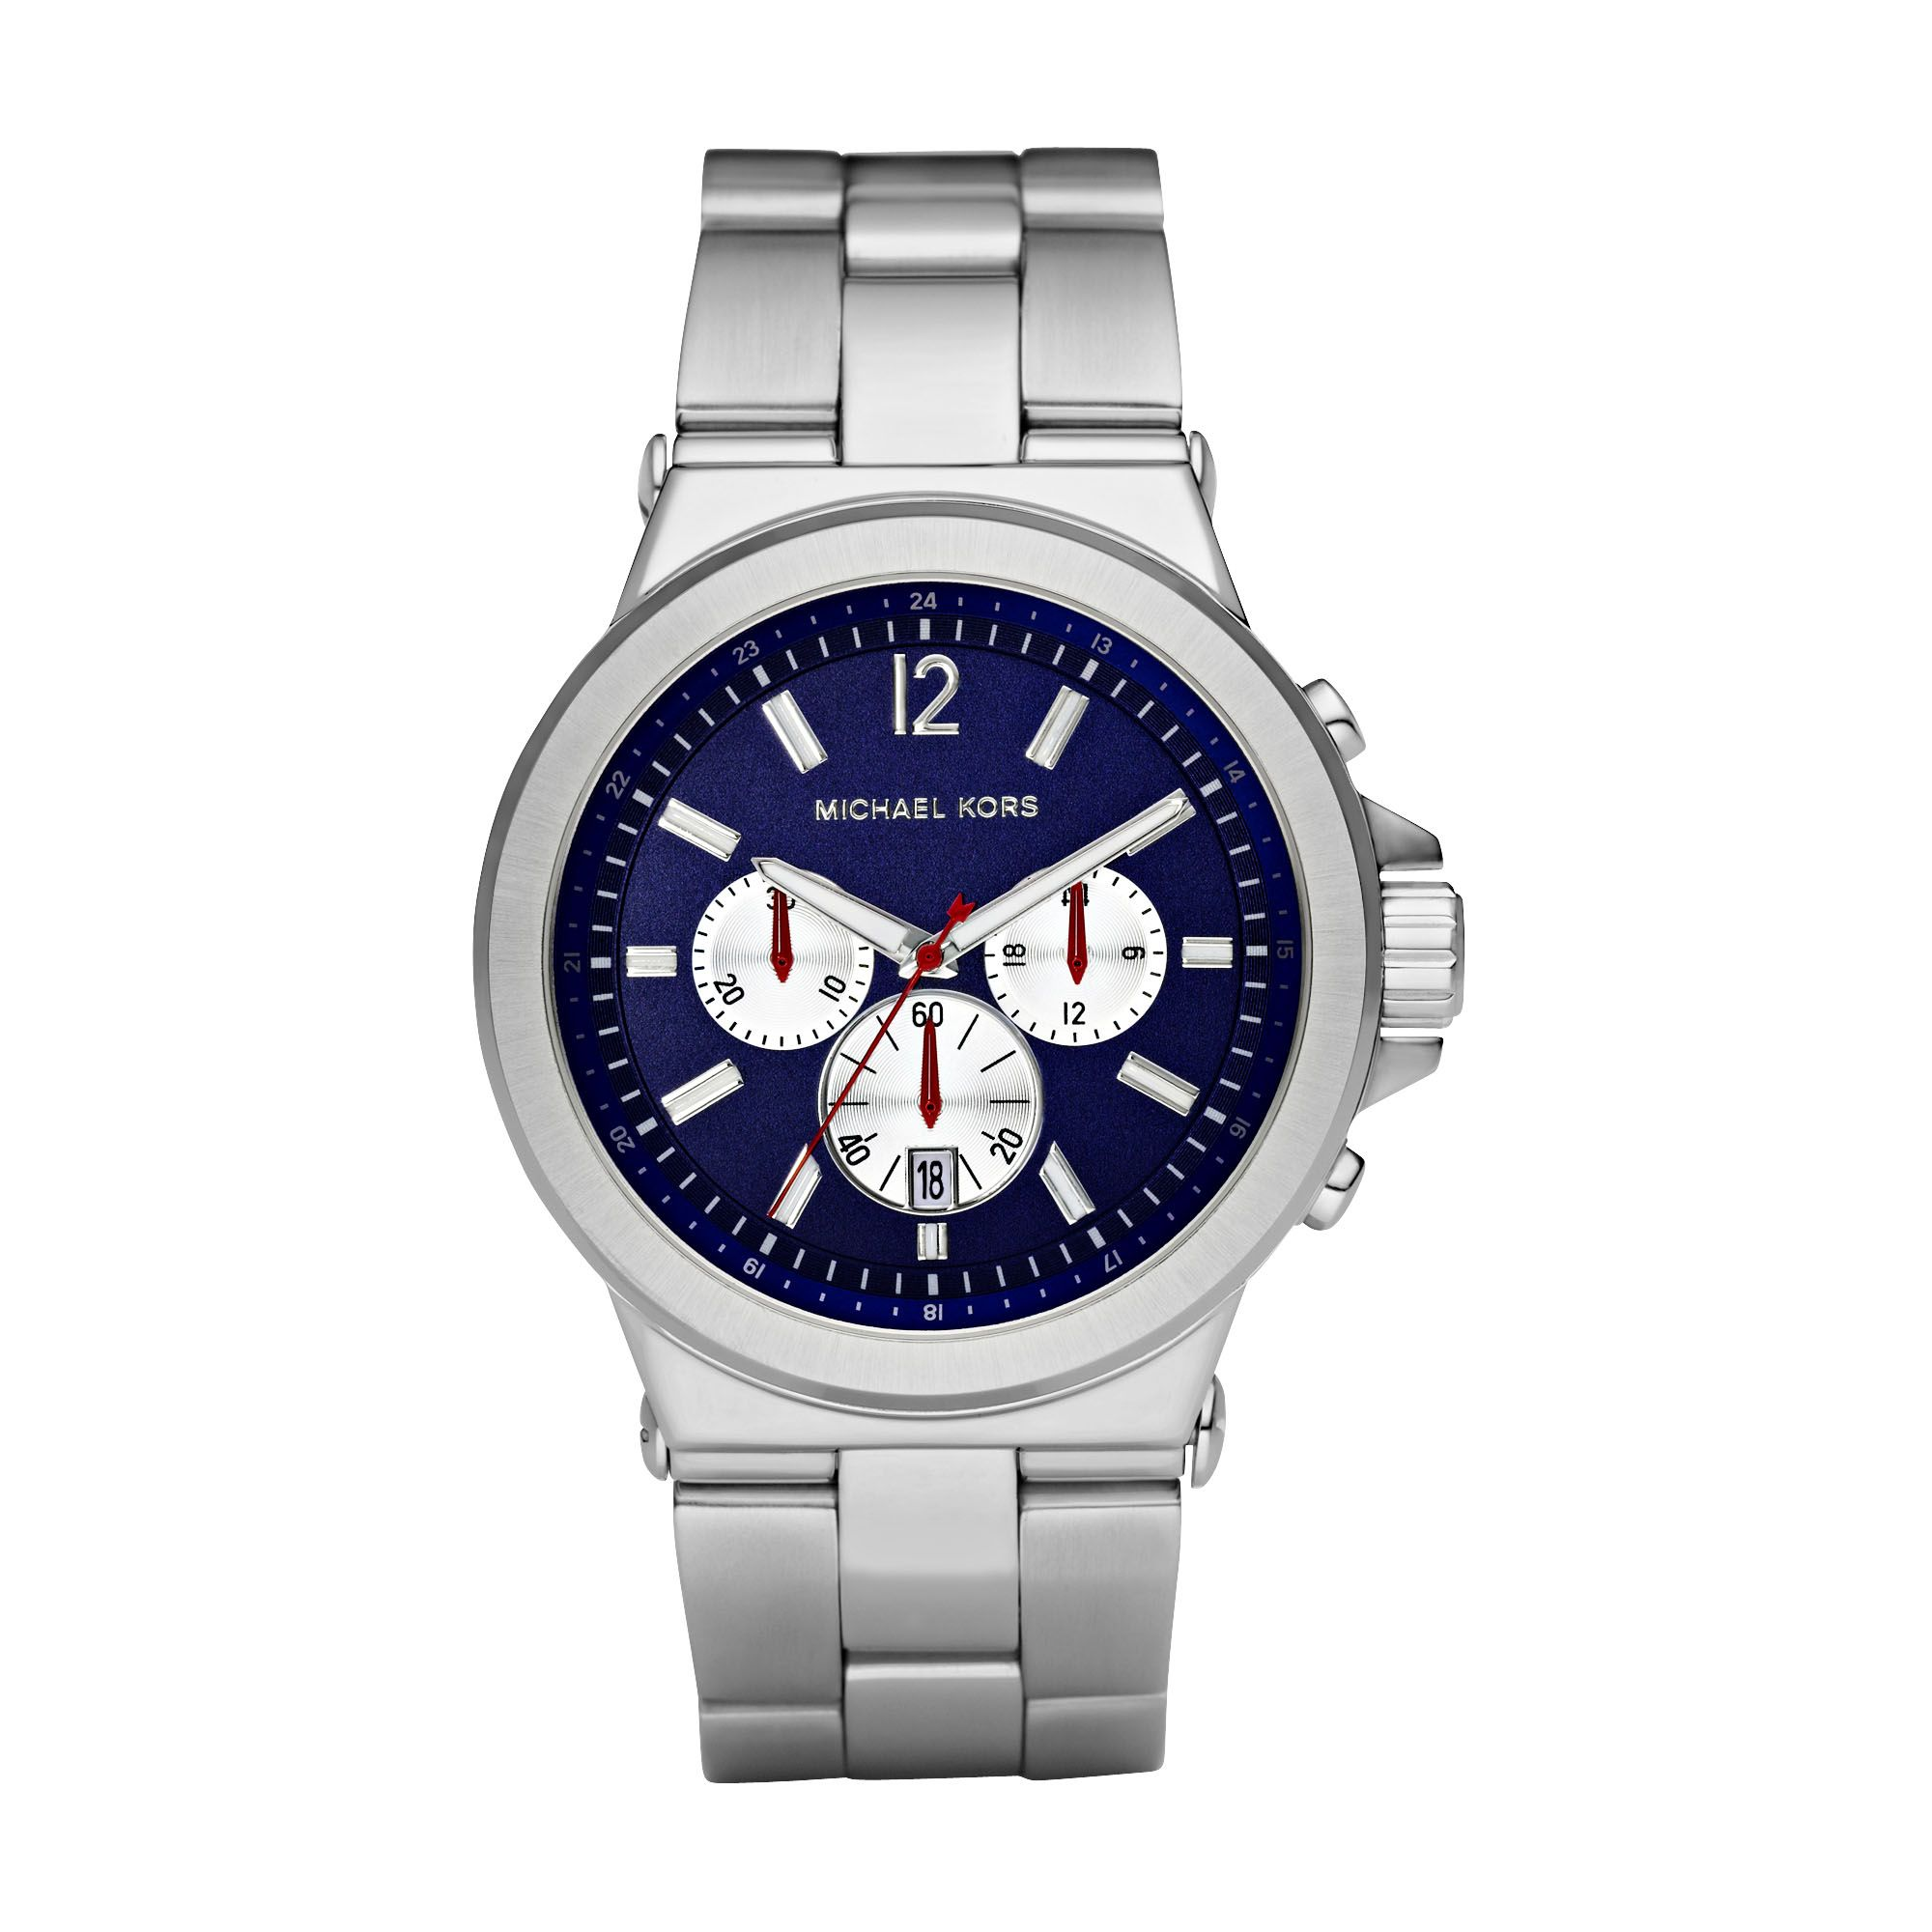 Michael Kors Mens watch MK8171 product image